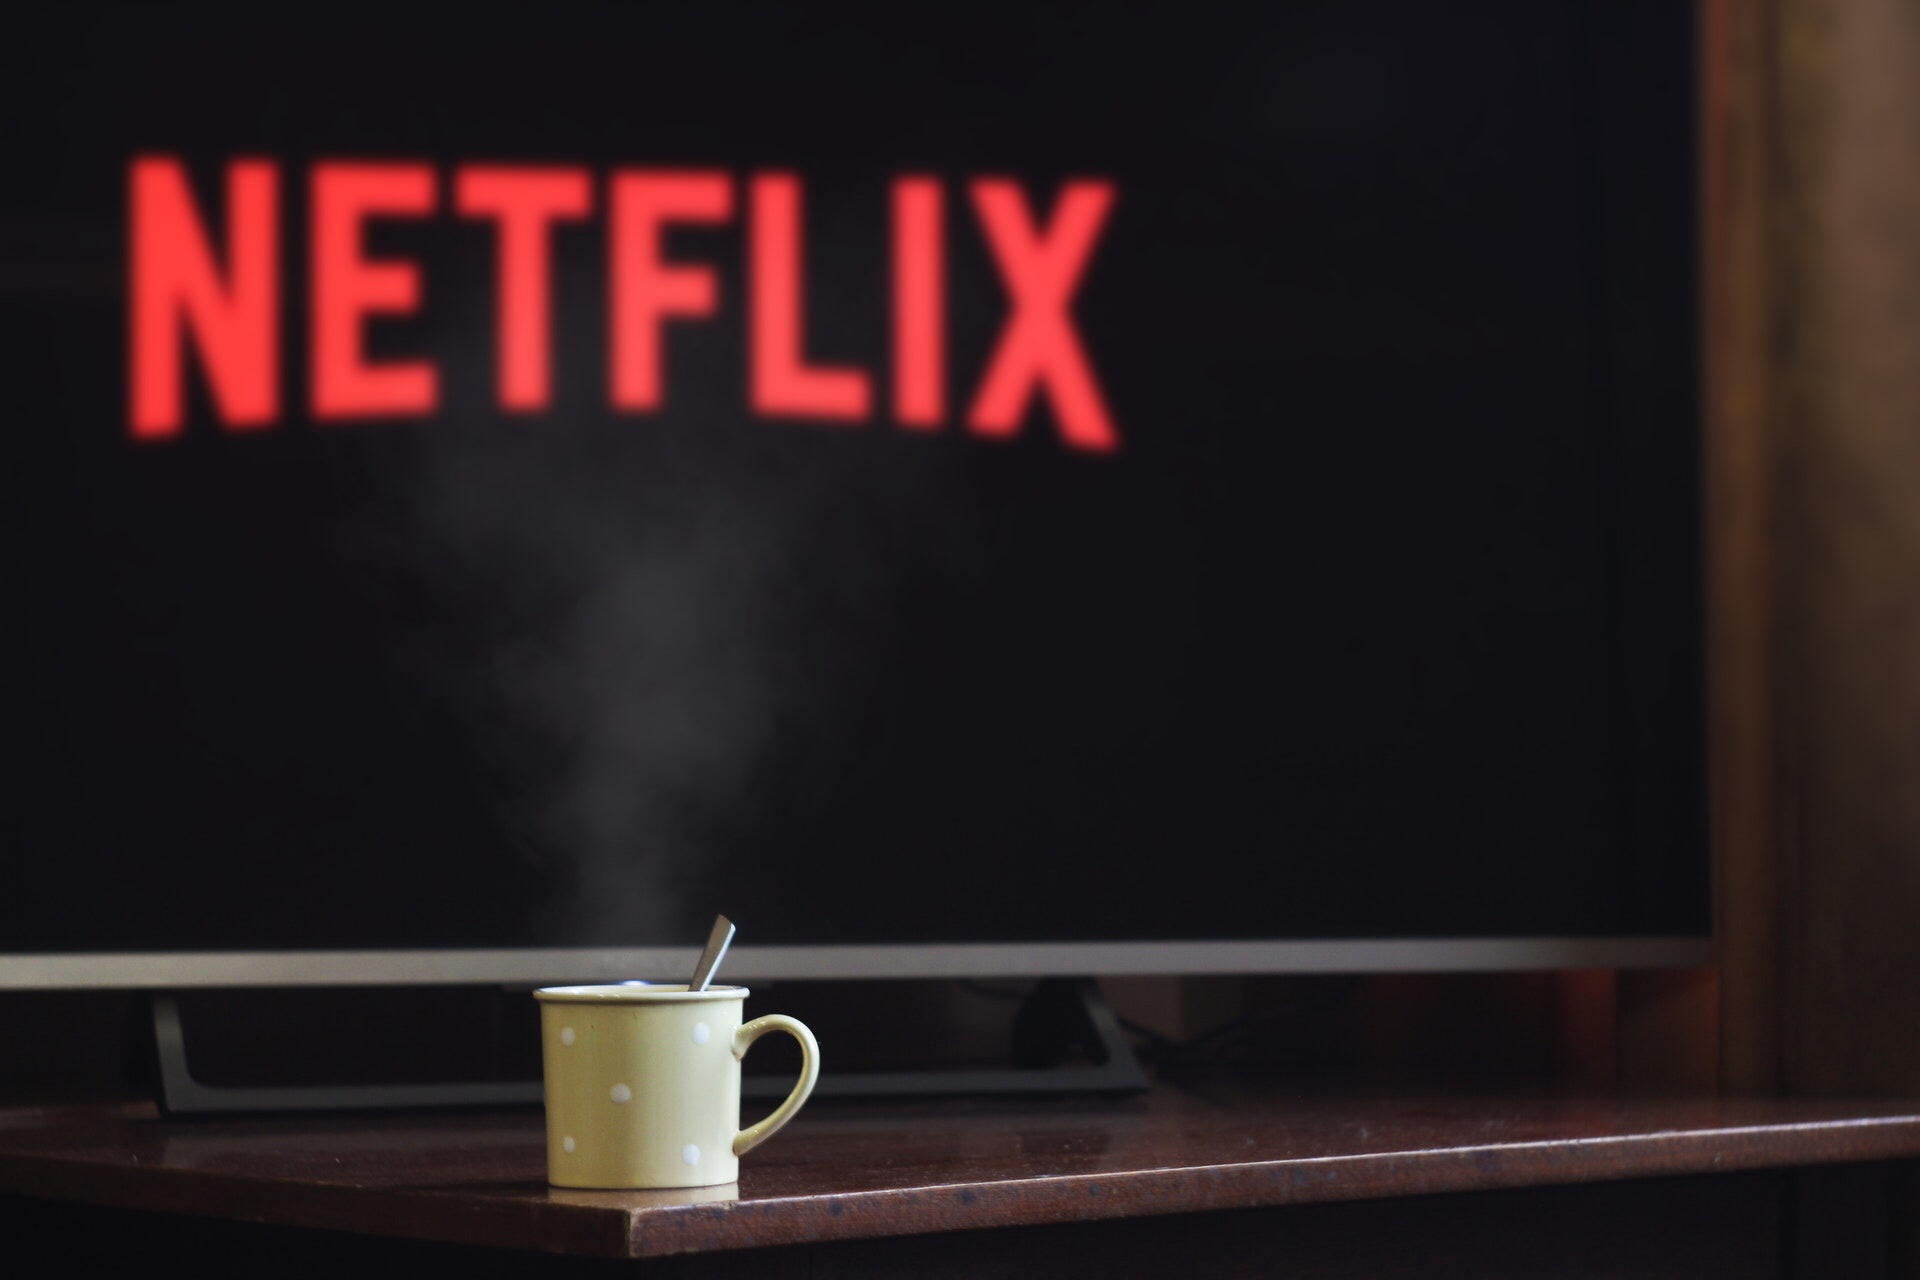 Cup on a table in front of a Netflix loading screen